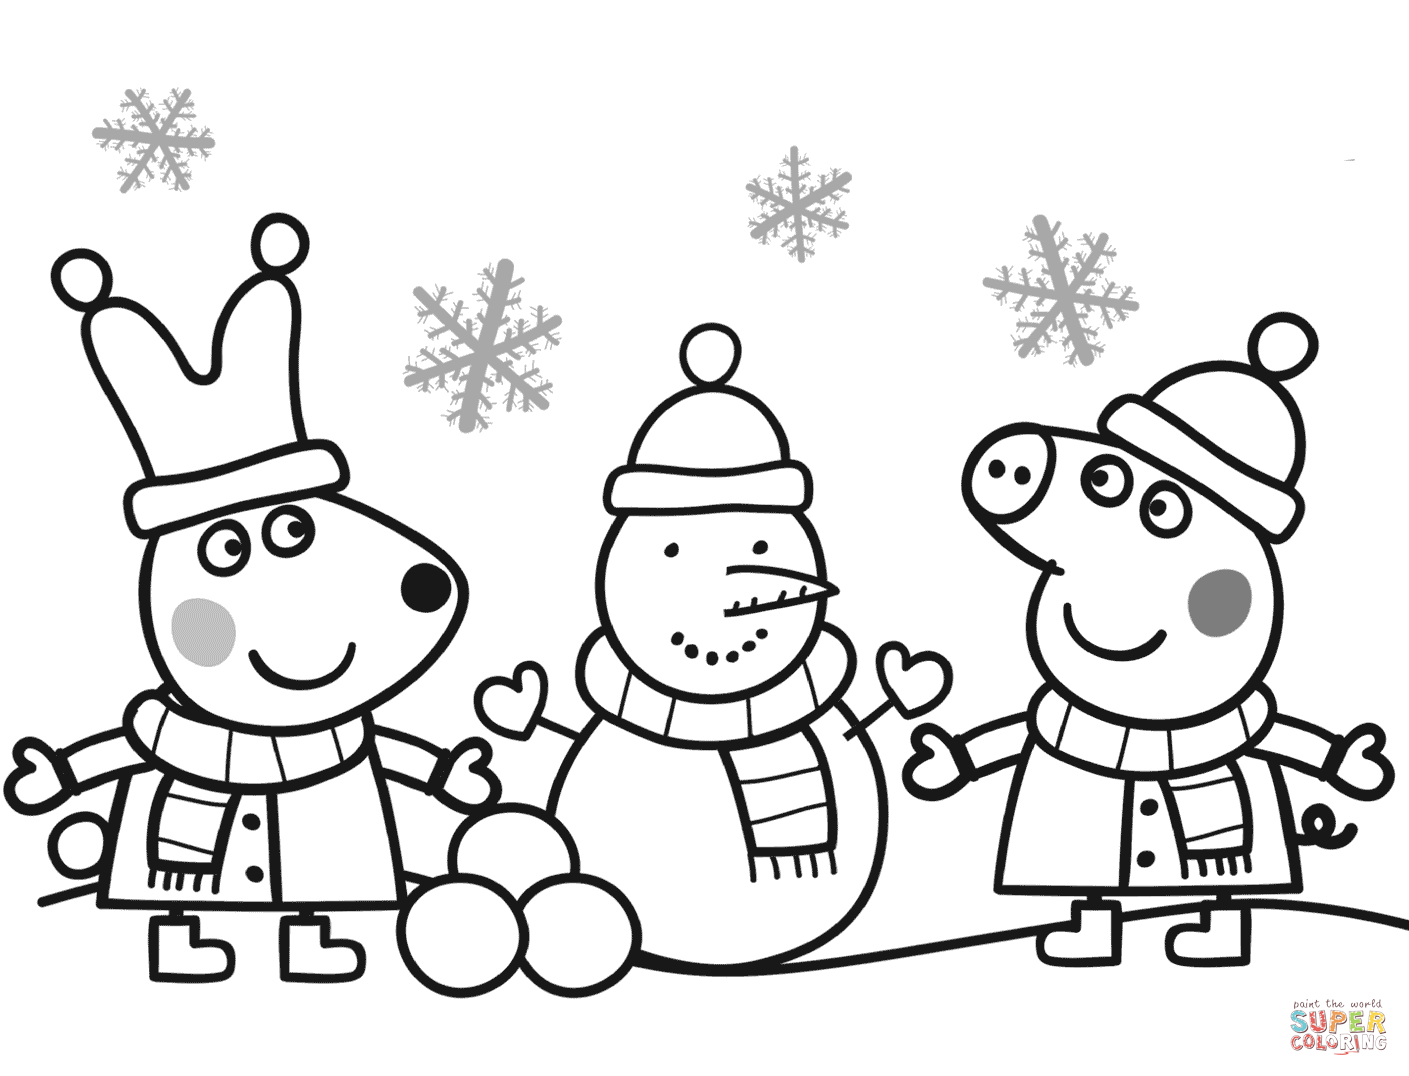 1409x1076 Peppa Pig Coloring Pages Within Coloring Pages Coloring Pages